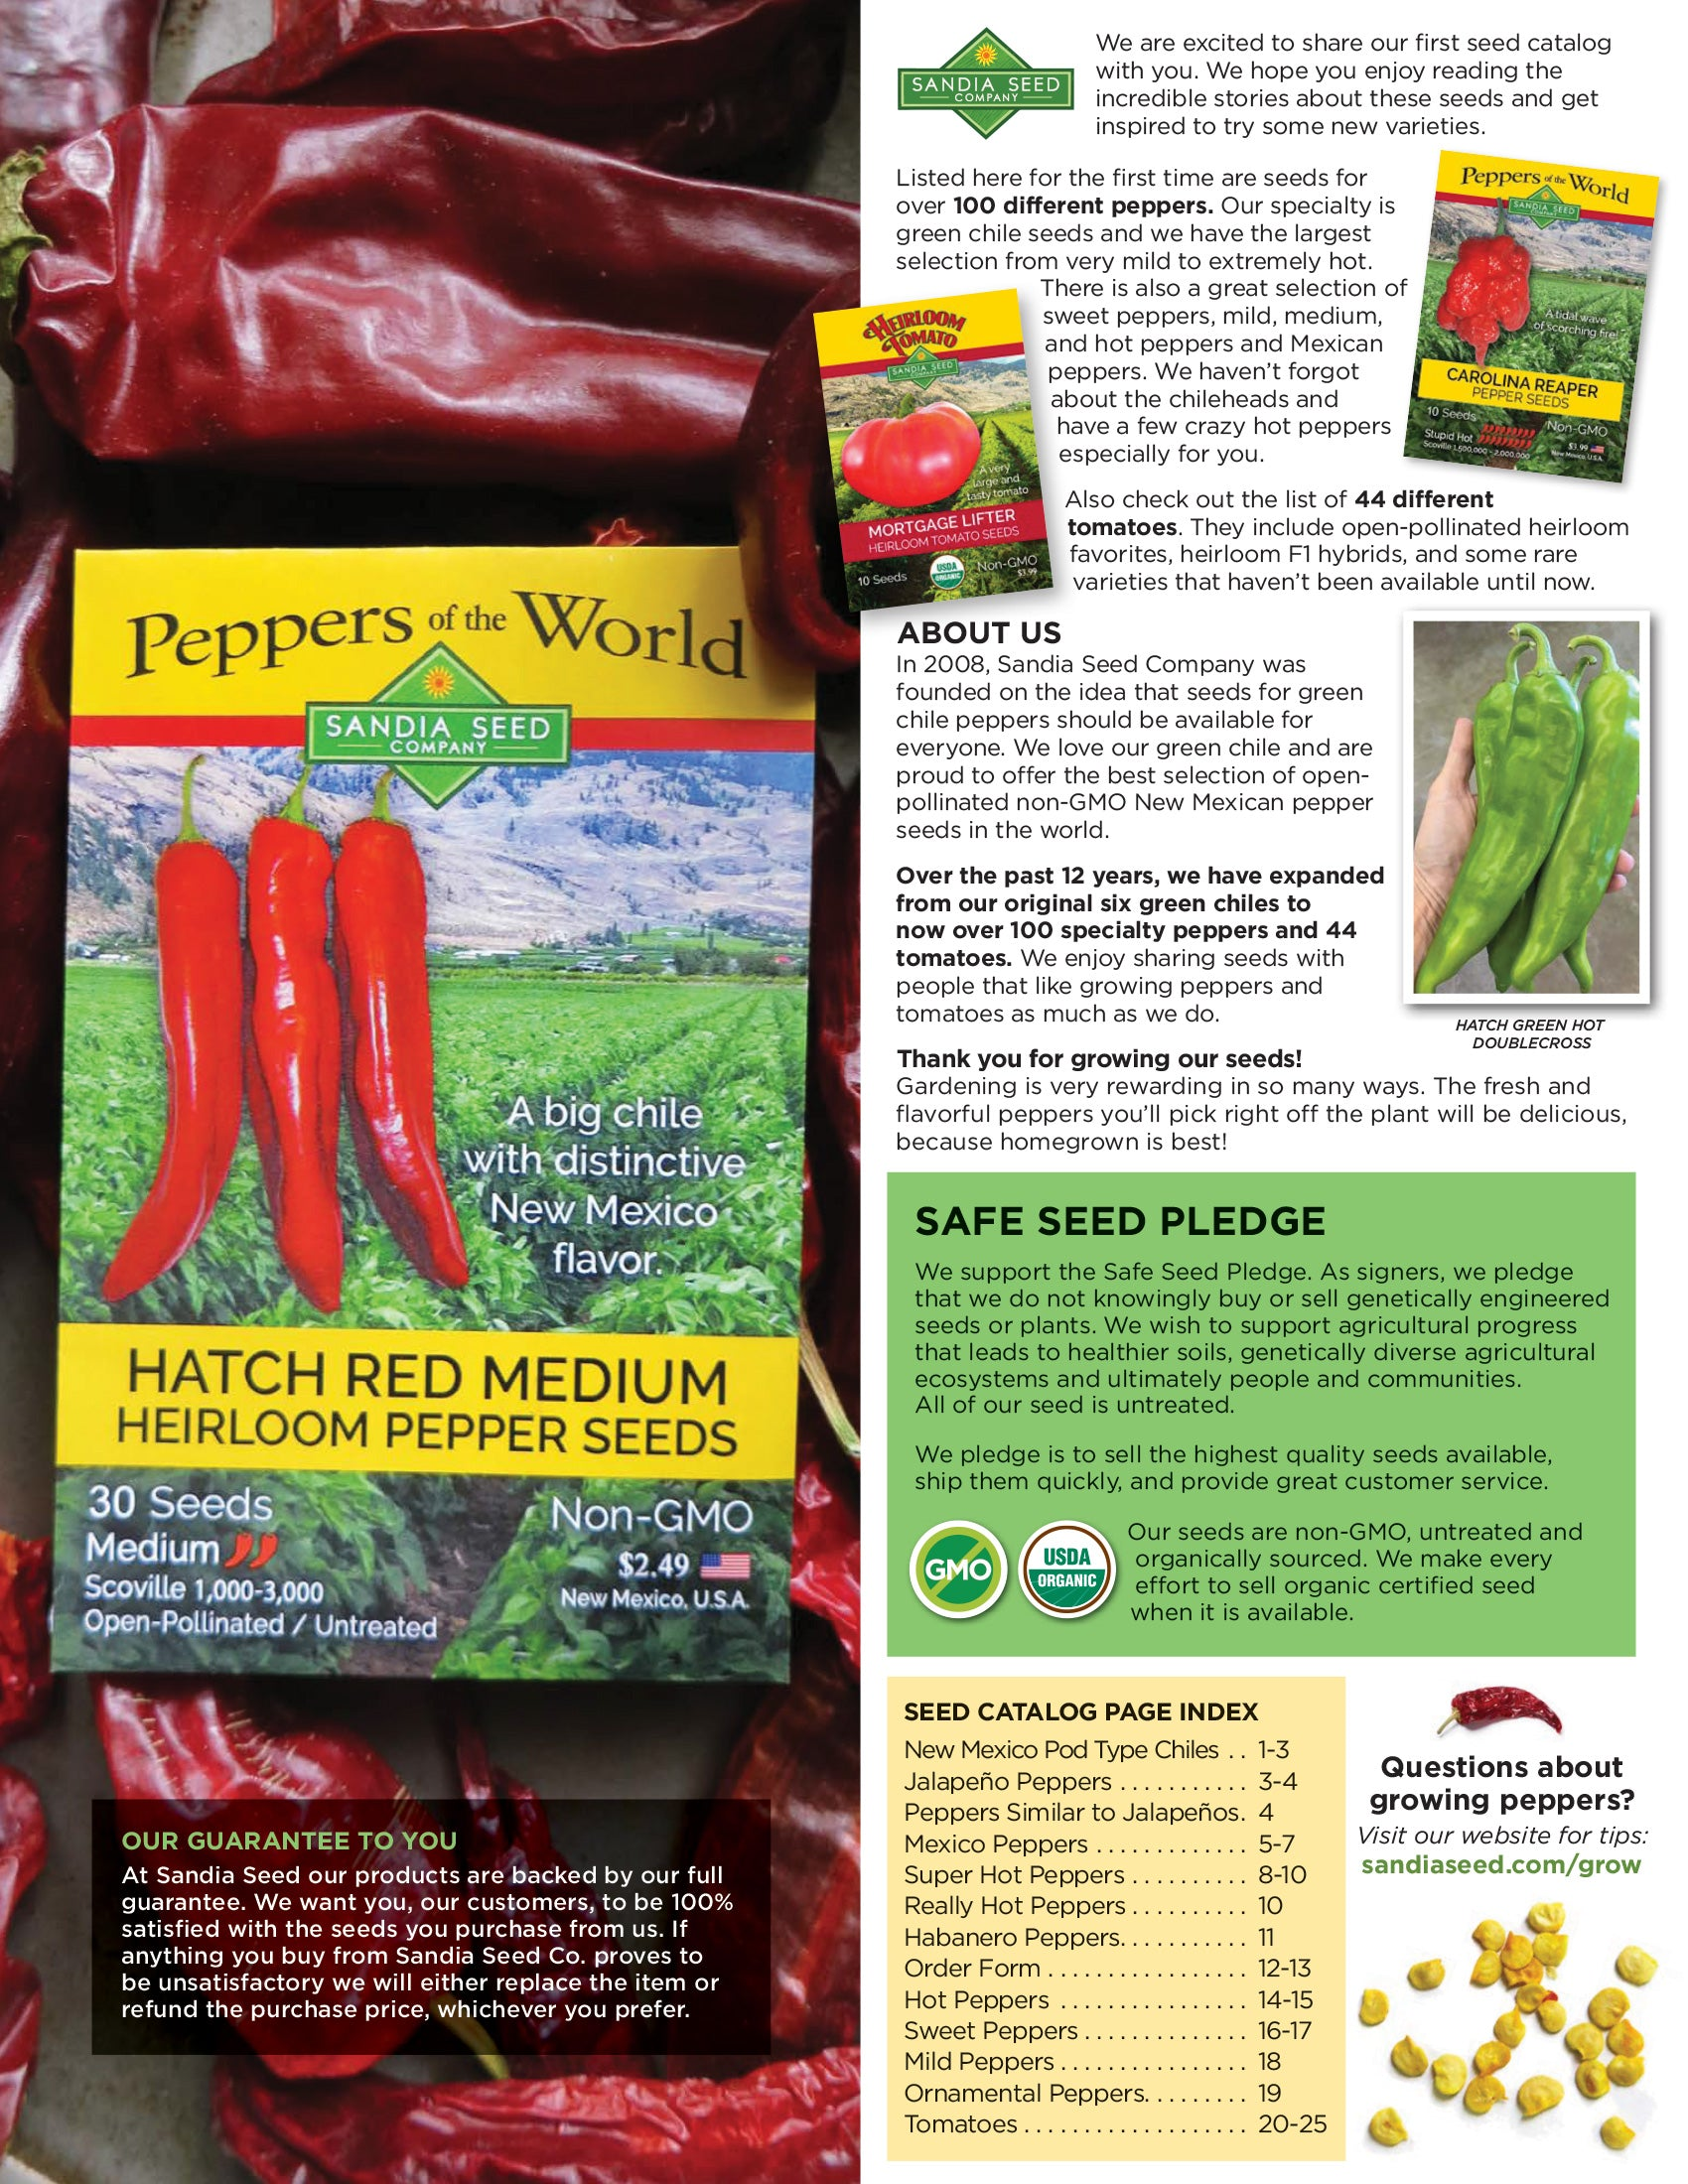 Seed Catalog for 2020 - featuring 100 Pepper seeds and 44 Tomato seeds!